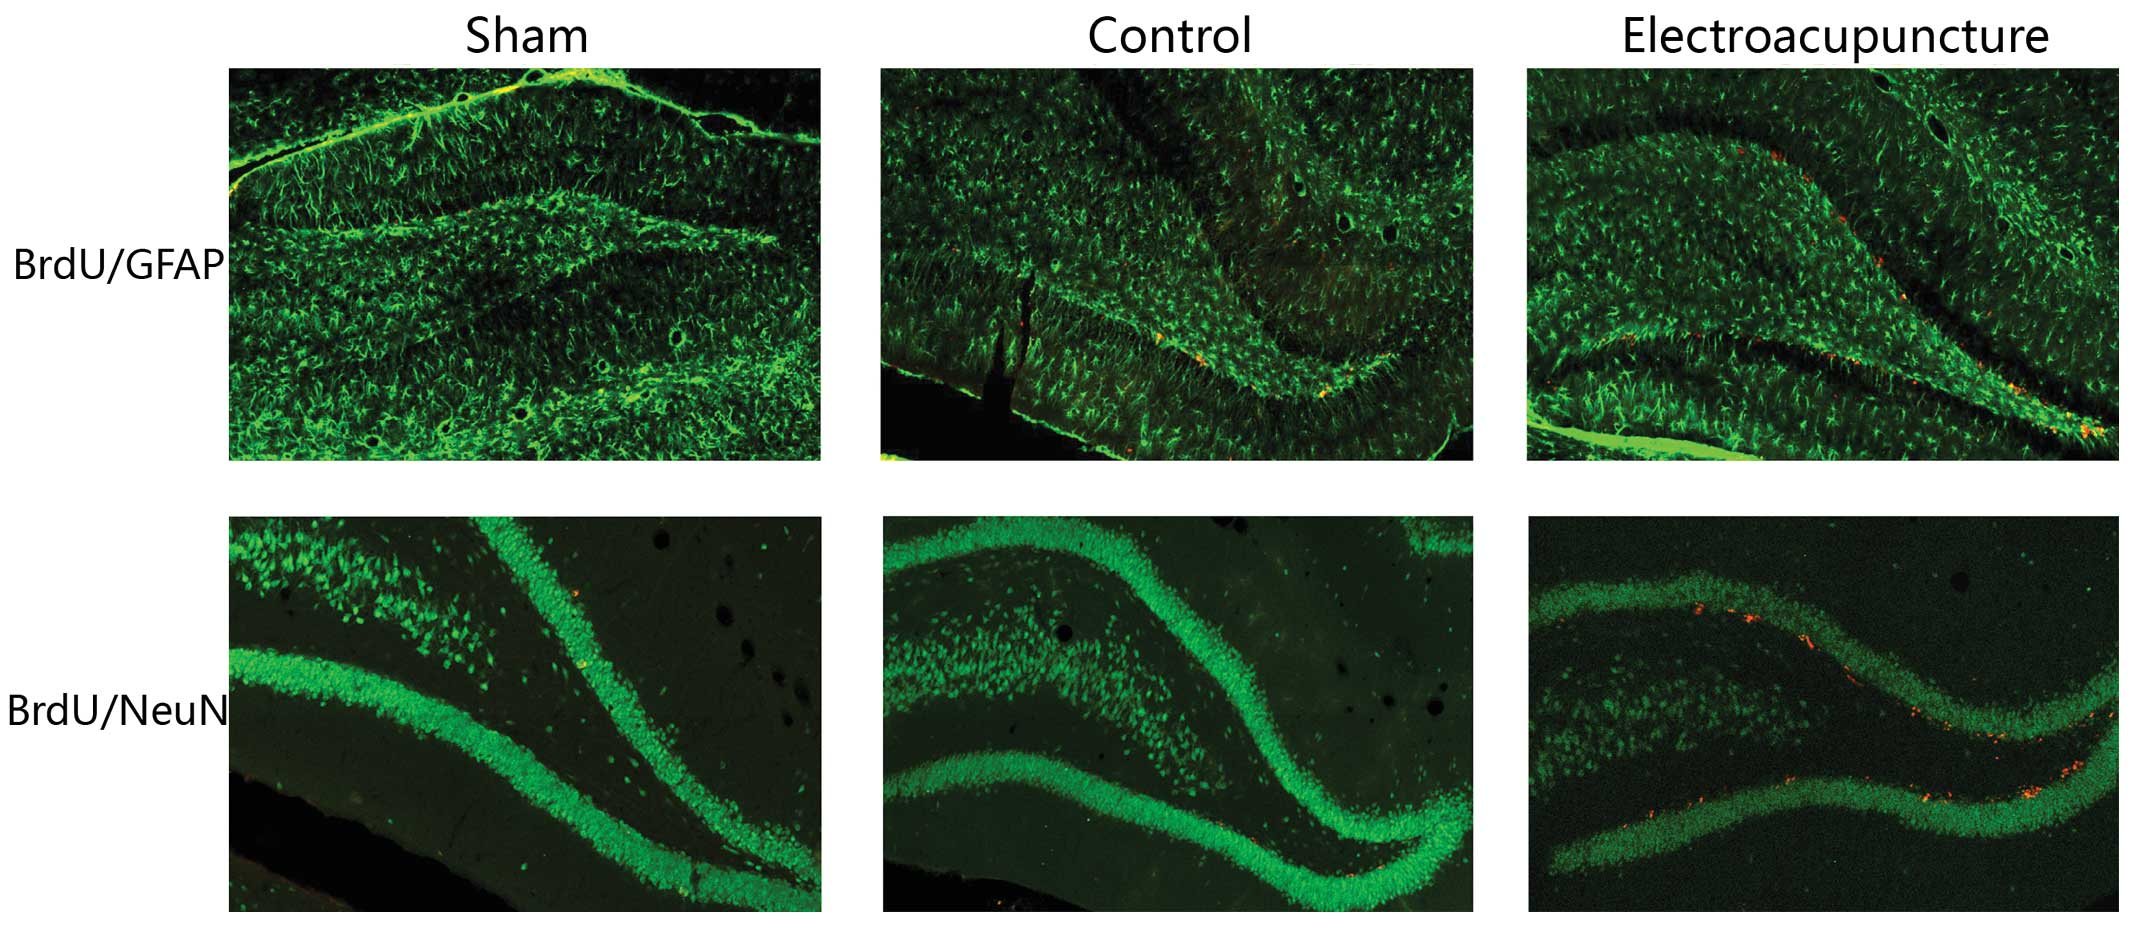 Electroacupuncture Promotes Neural Stem Cell Proliferation